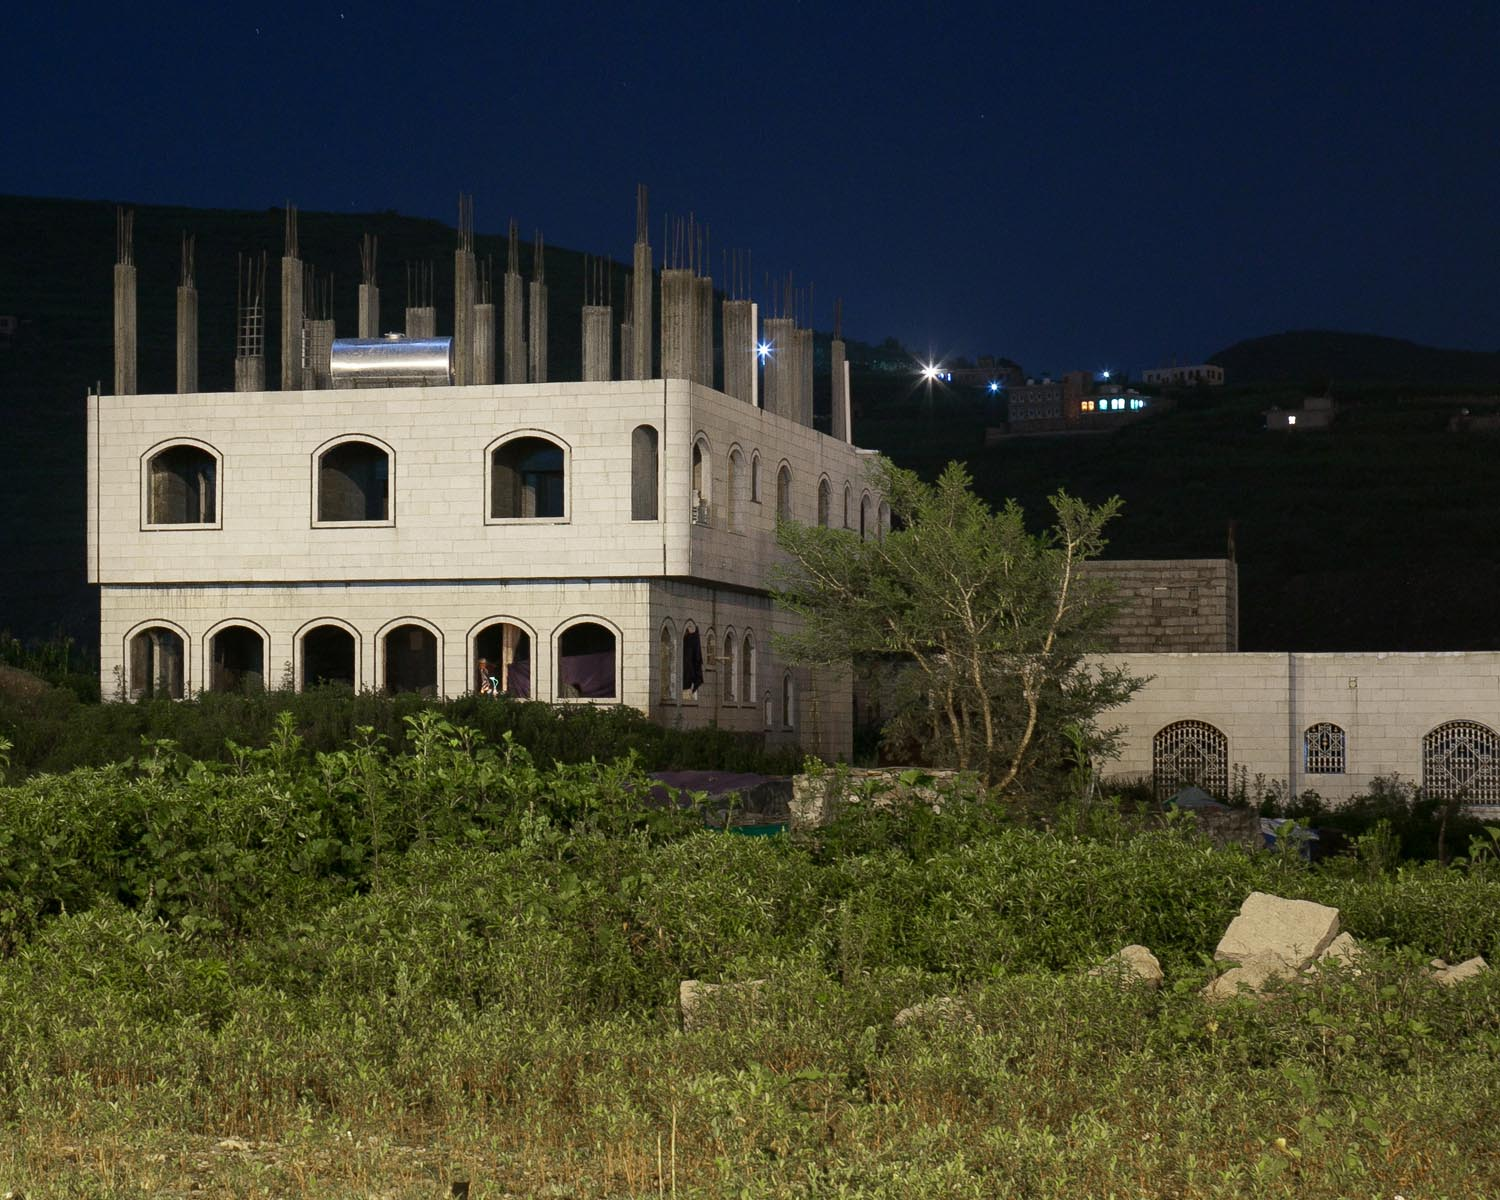 A new building in Ibb. August 2010.